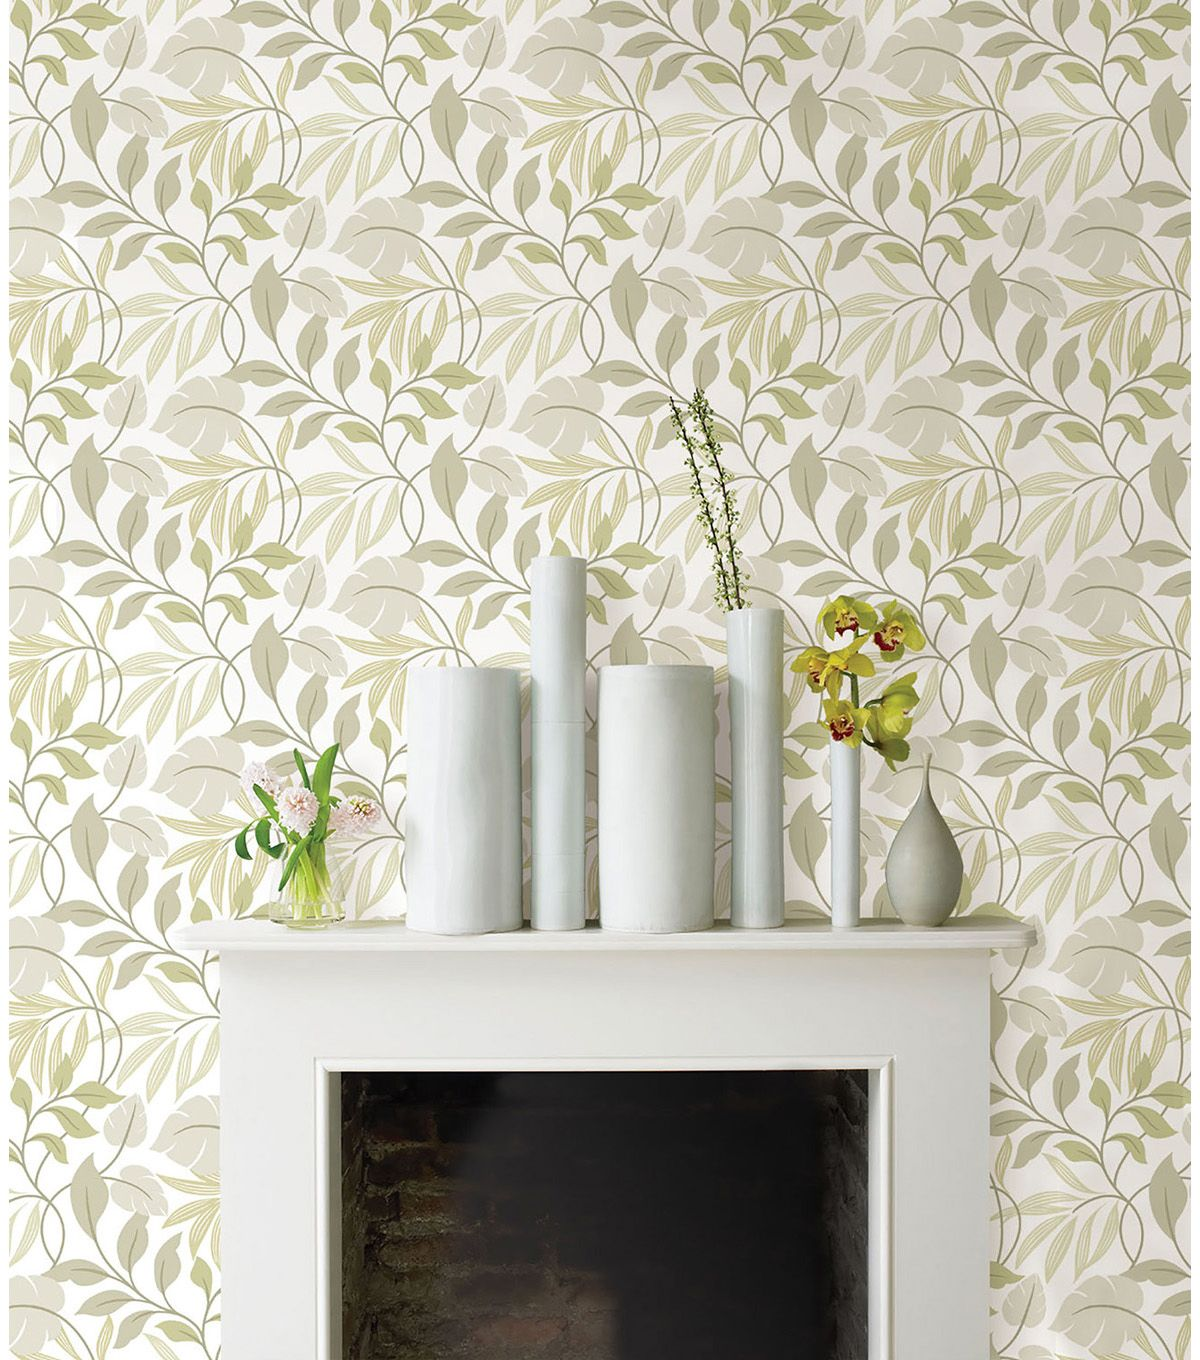 Peel And Stick Wallpaper Available At Joann Fabrics Home Depot And Amazon Home Bathroom Medicine Cabinet Home Depot